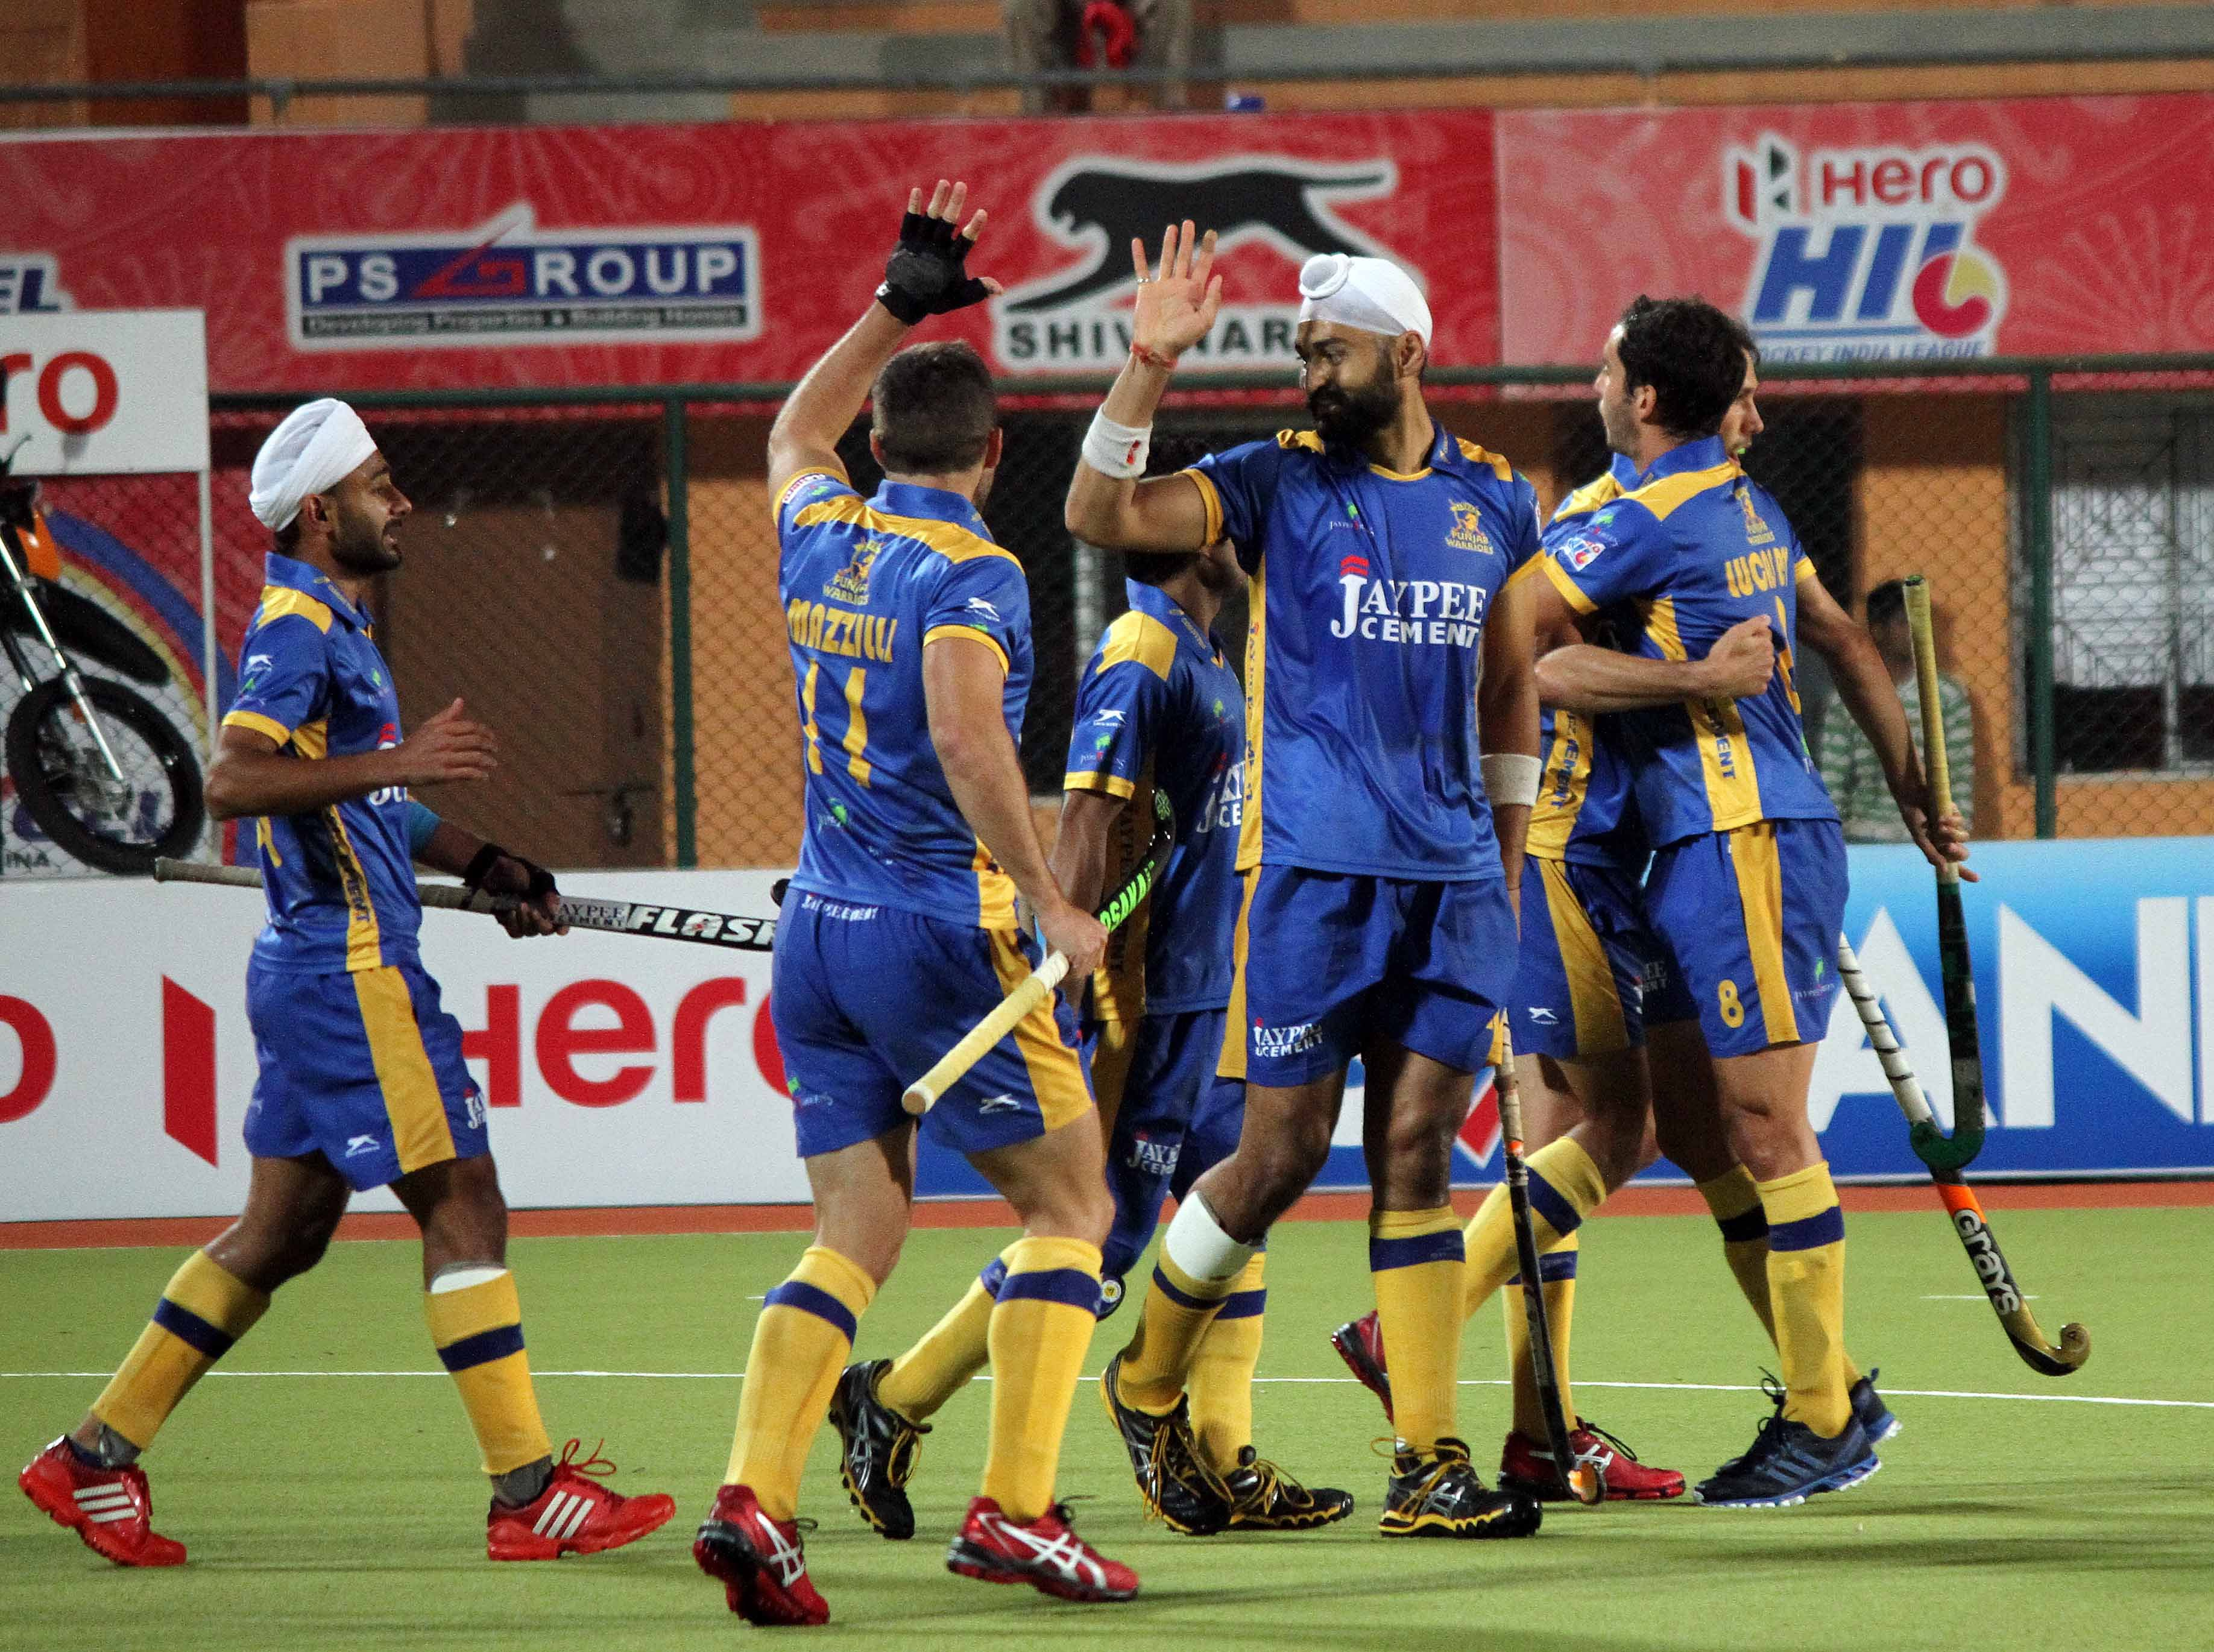 Jaypee Punjab Warriors beat Ranchi Rhinos 3-2 to emerge league toppers in HHIL 2014